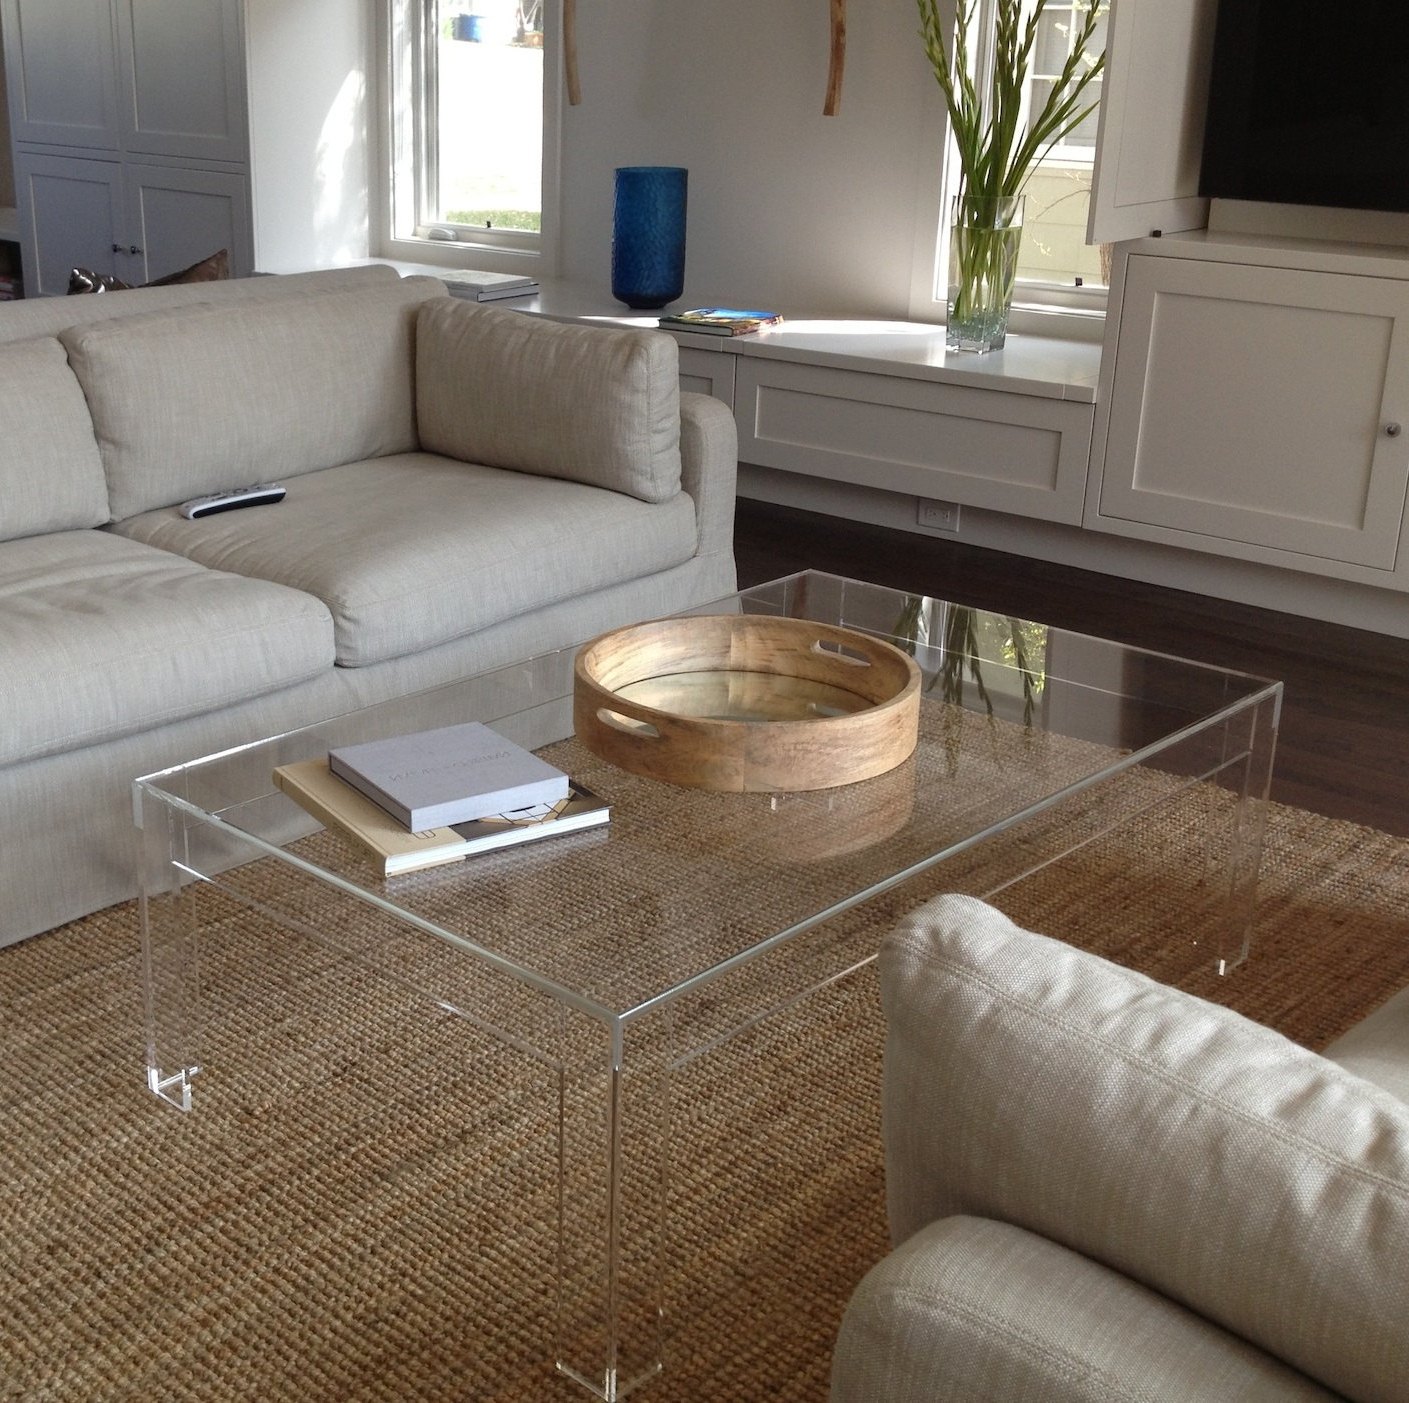 Felicity Cocktail Tables Regarding Famous Acrylic Coffee Table: Elegant In Living Room! — Fossil Brewing Design (View 4 of 20)